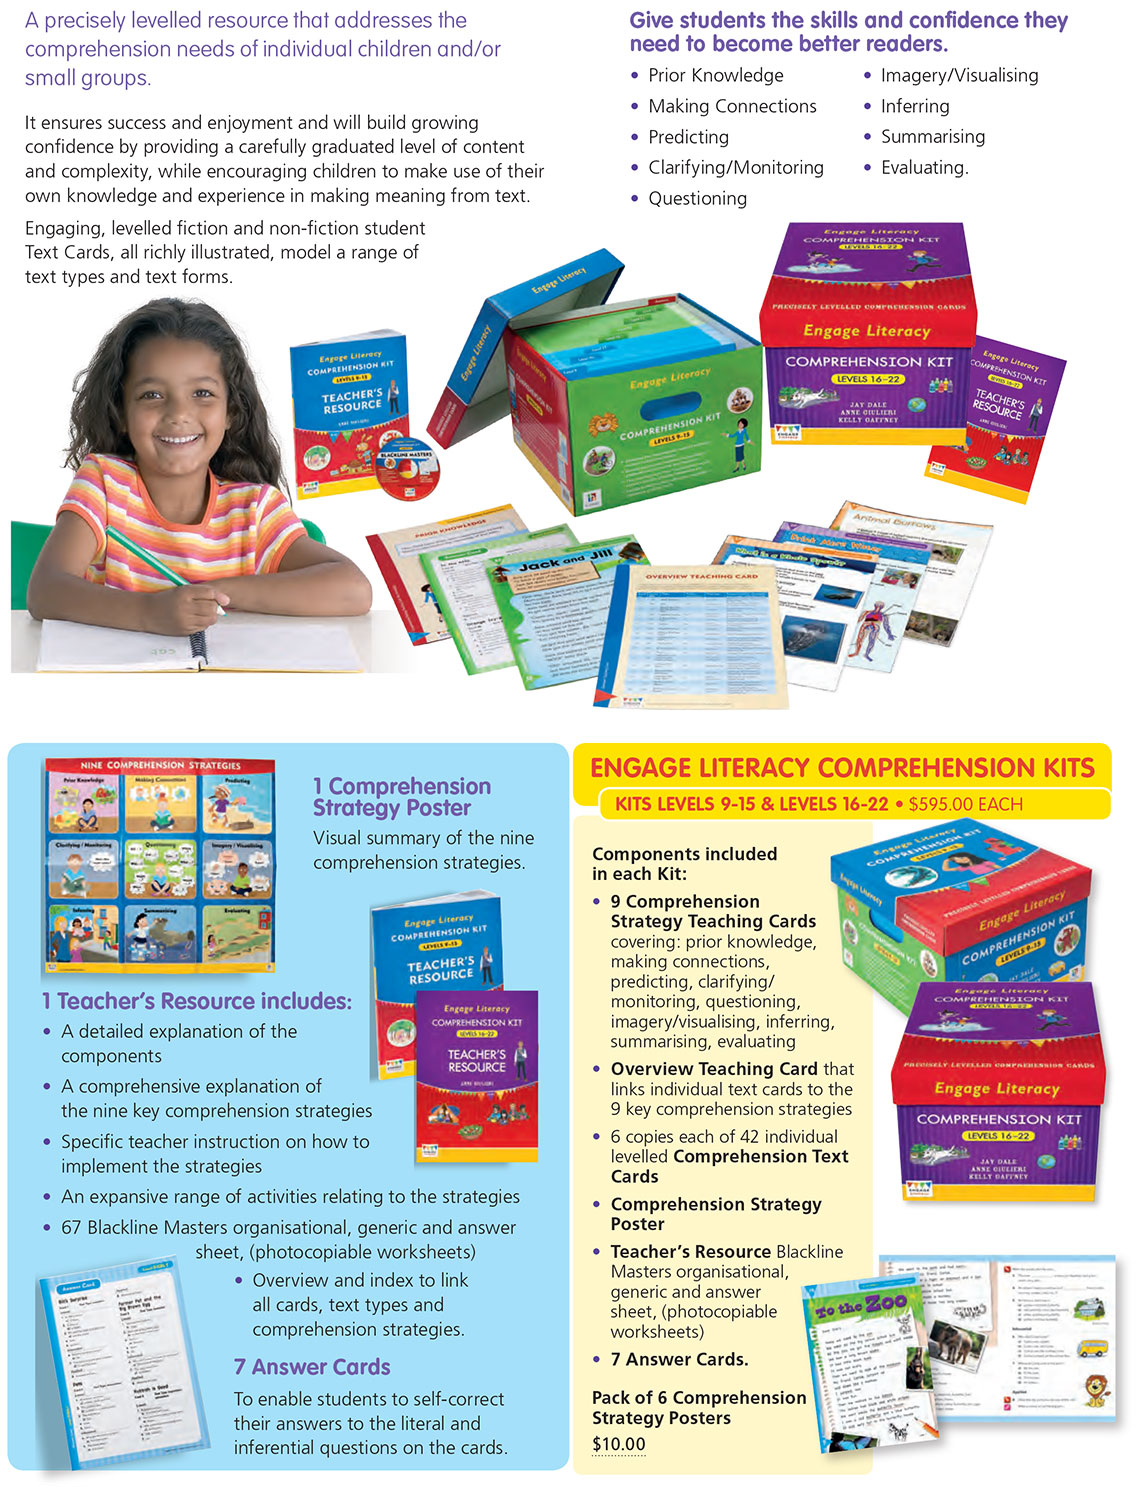 engage comprehension kits 2